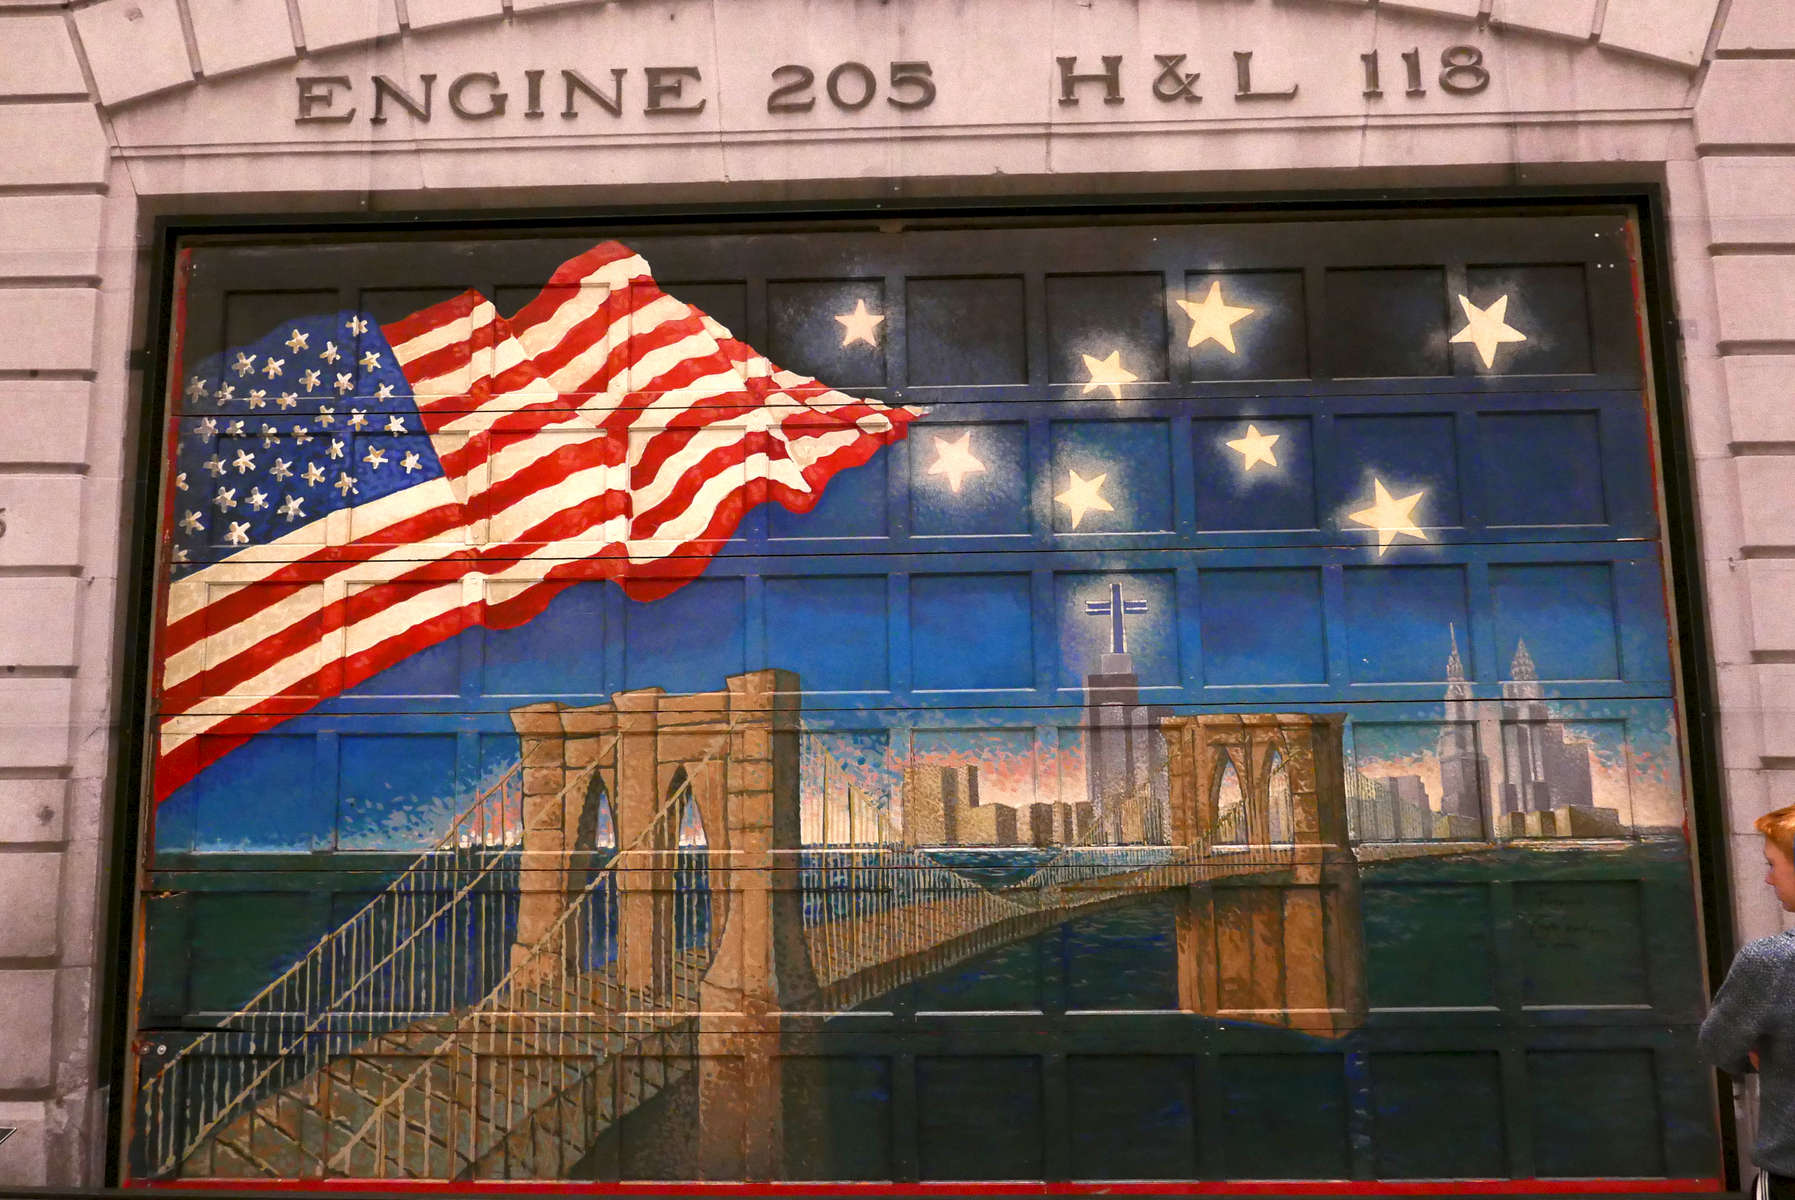 Painting honoring Engine Company 205, Hook and Ladder 118, in 9/11 Memorial and Museum. Jon Chase photo